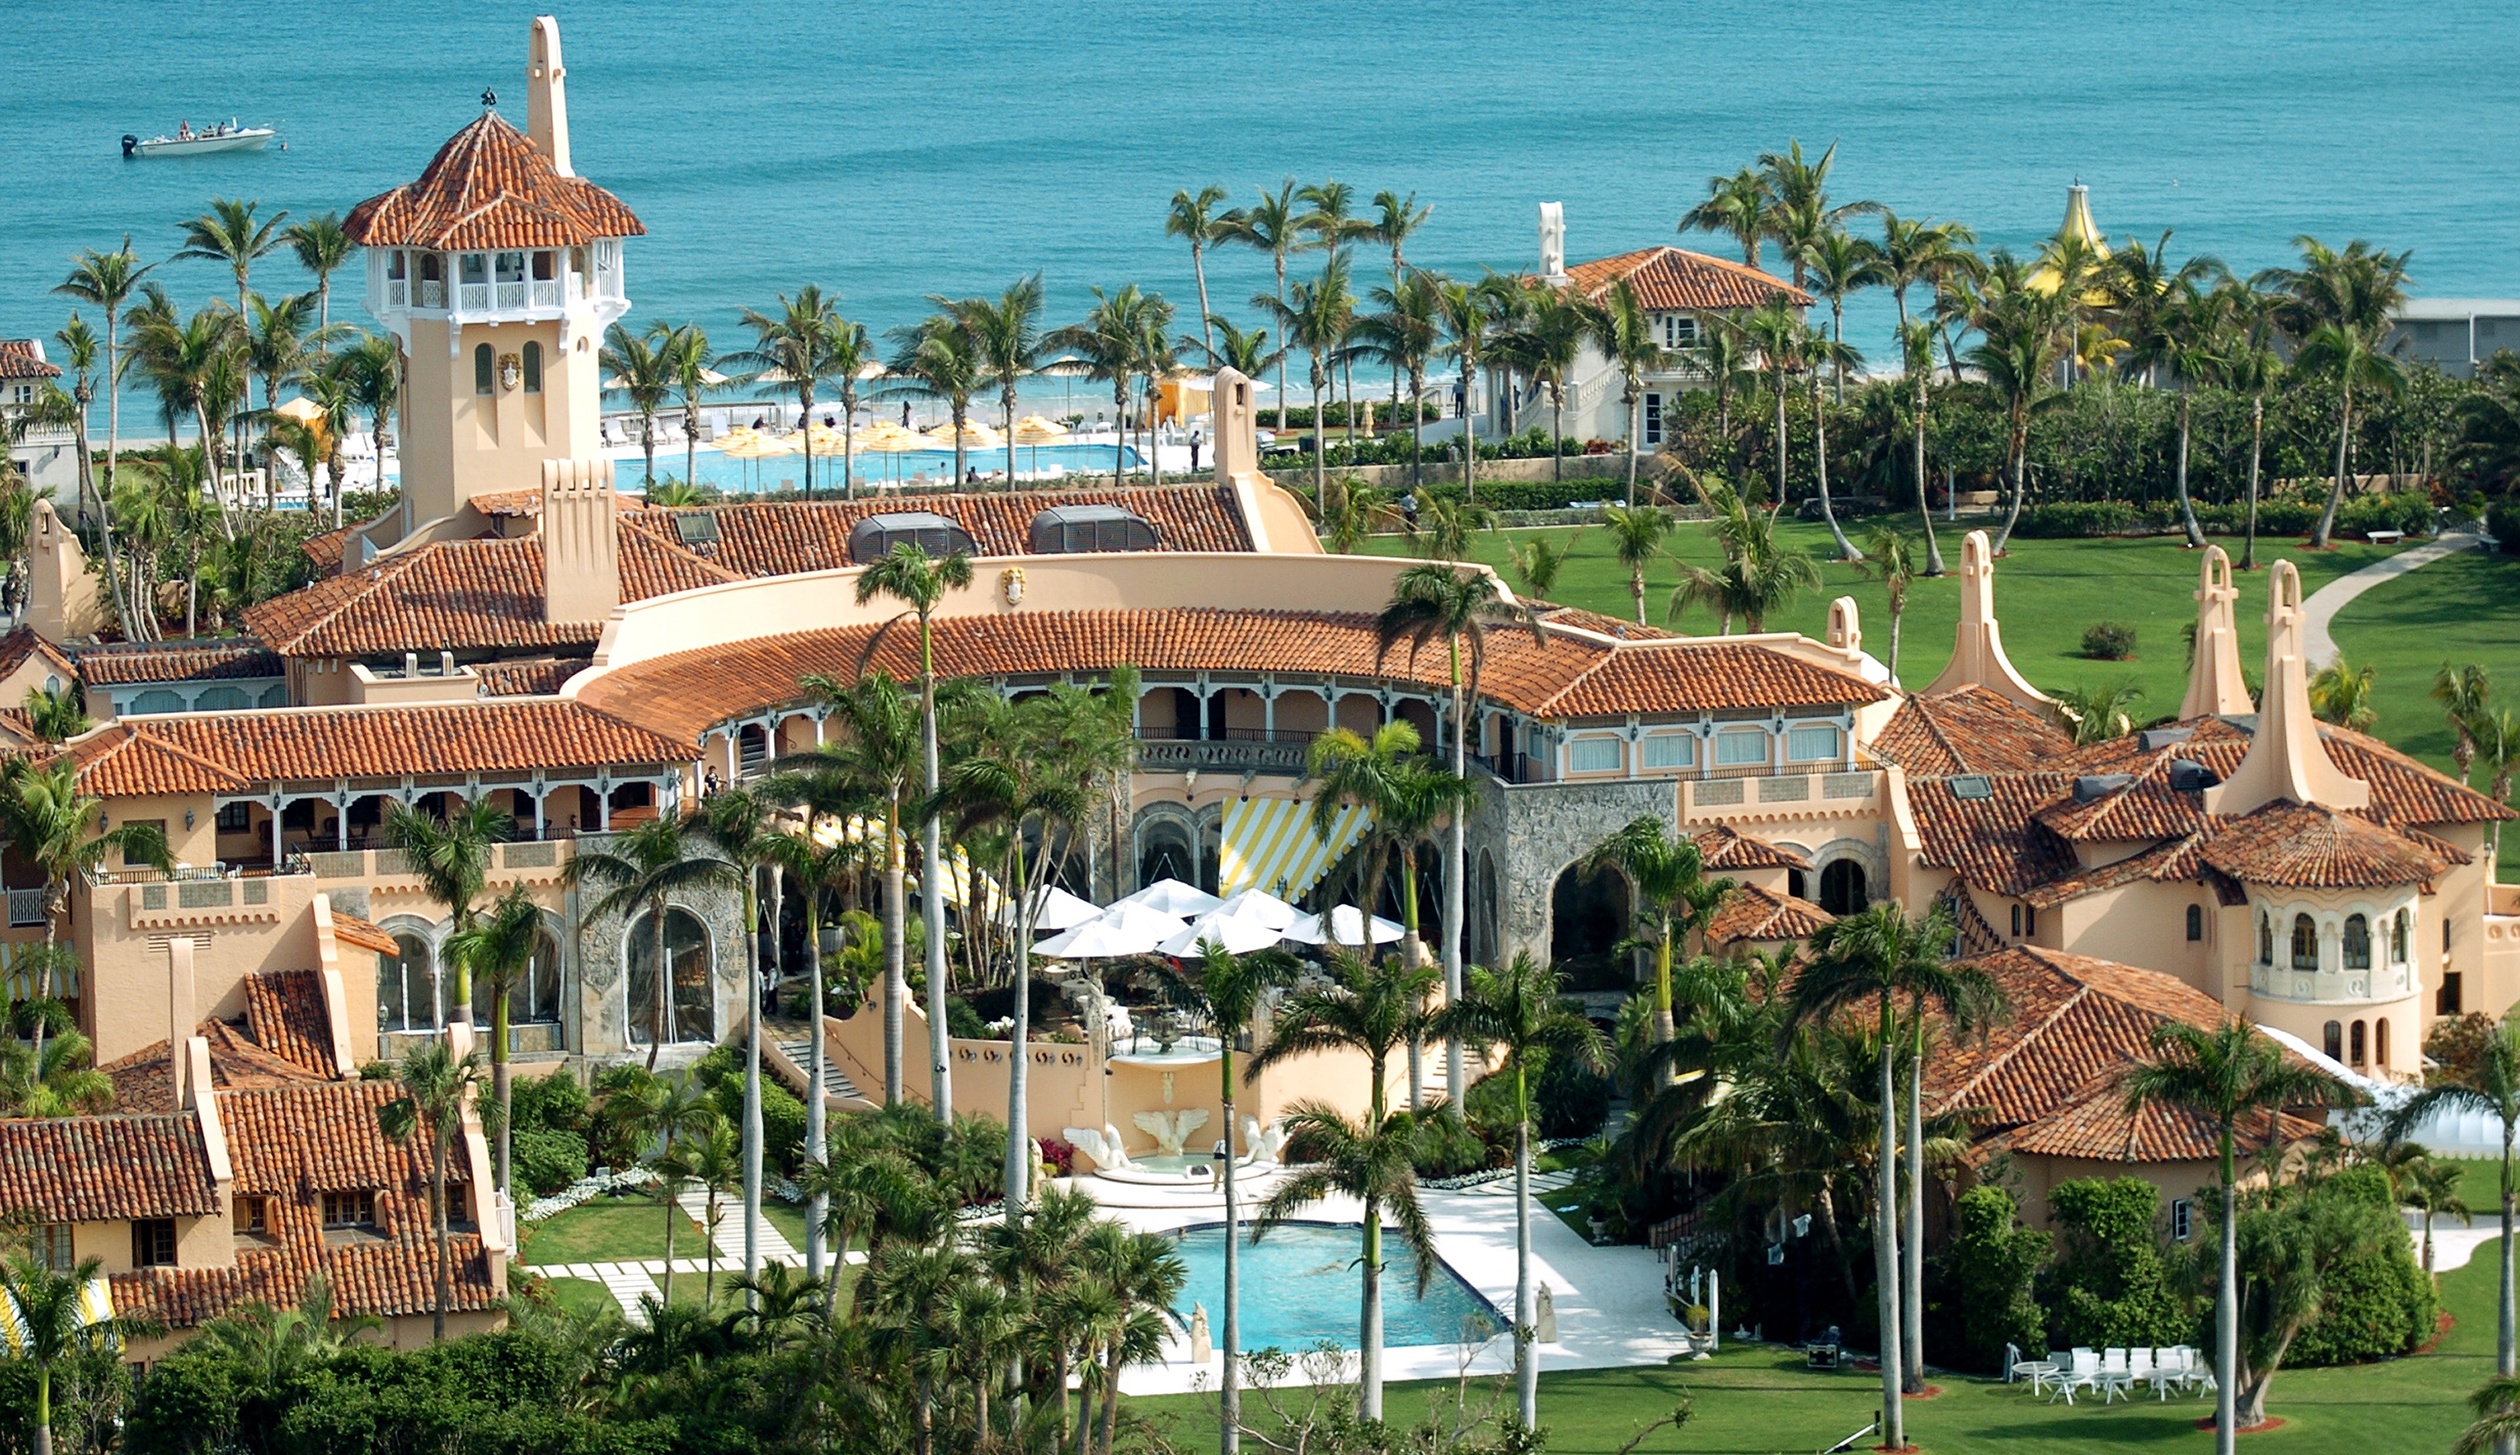 https://content.fortune.com/wp-content/uploads/2016/03/mar-a-lago-club_1.jpg?quality=80